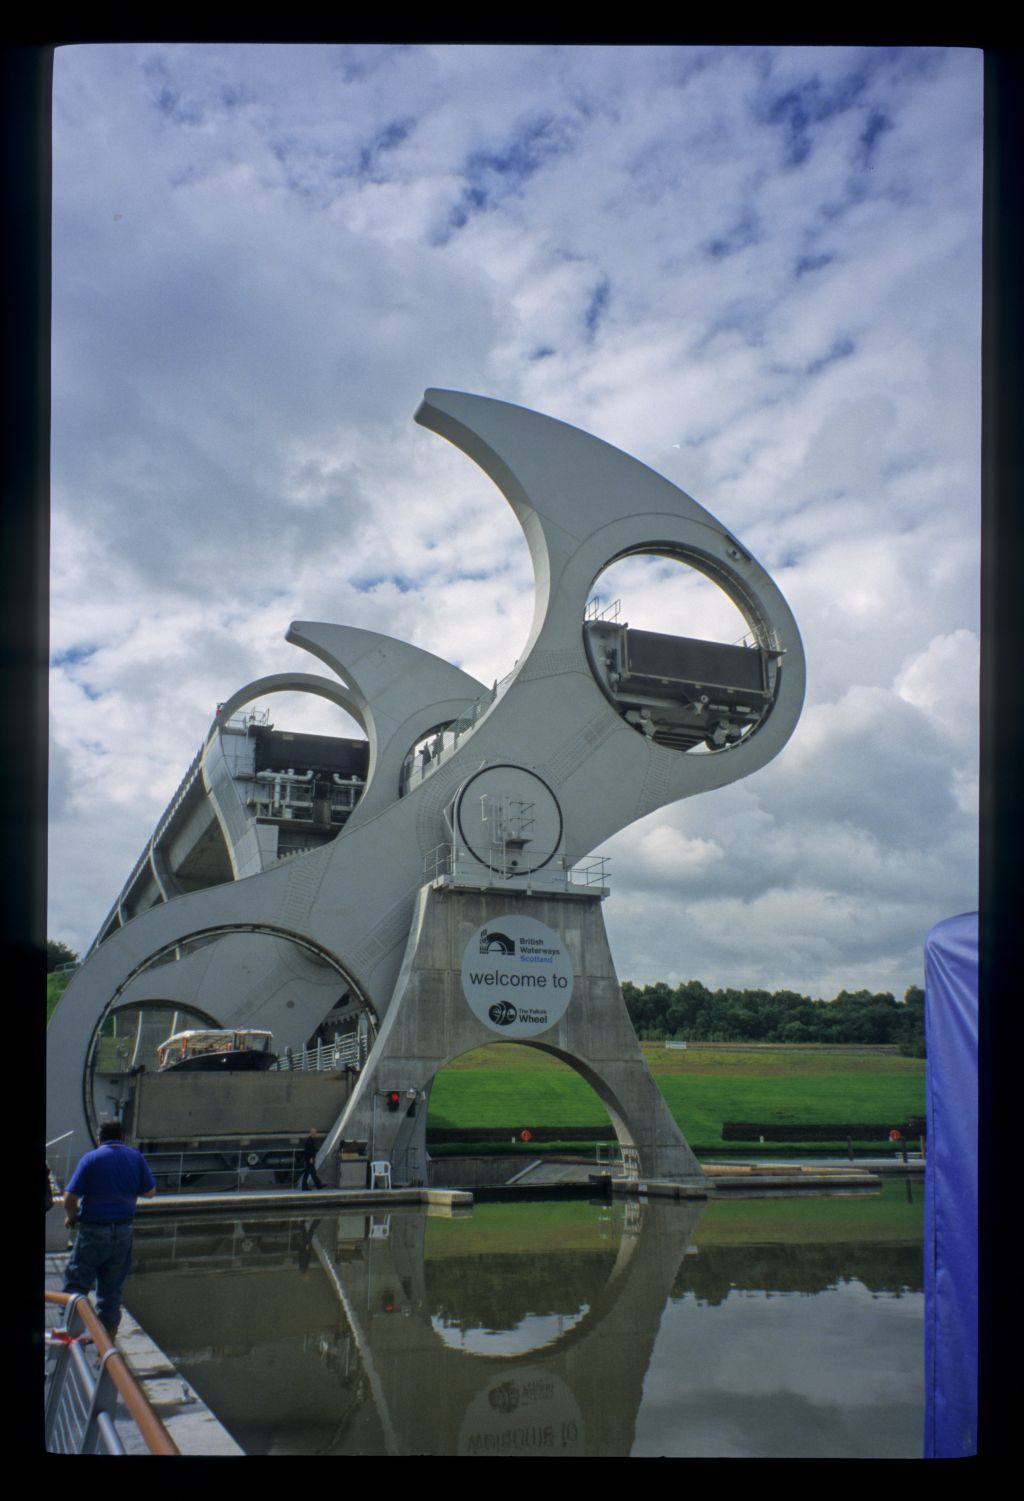 The Magnificent novelty of the Falkirk Wheel that reunites the Lowland Canals.